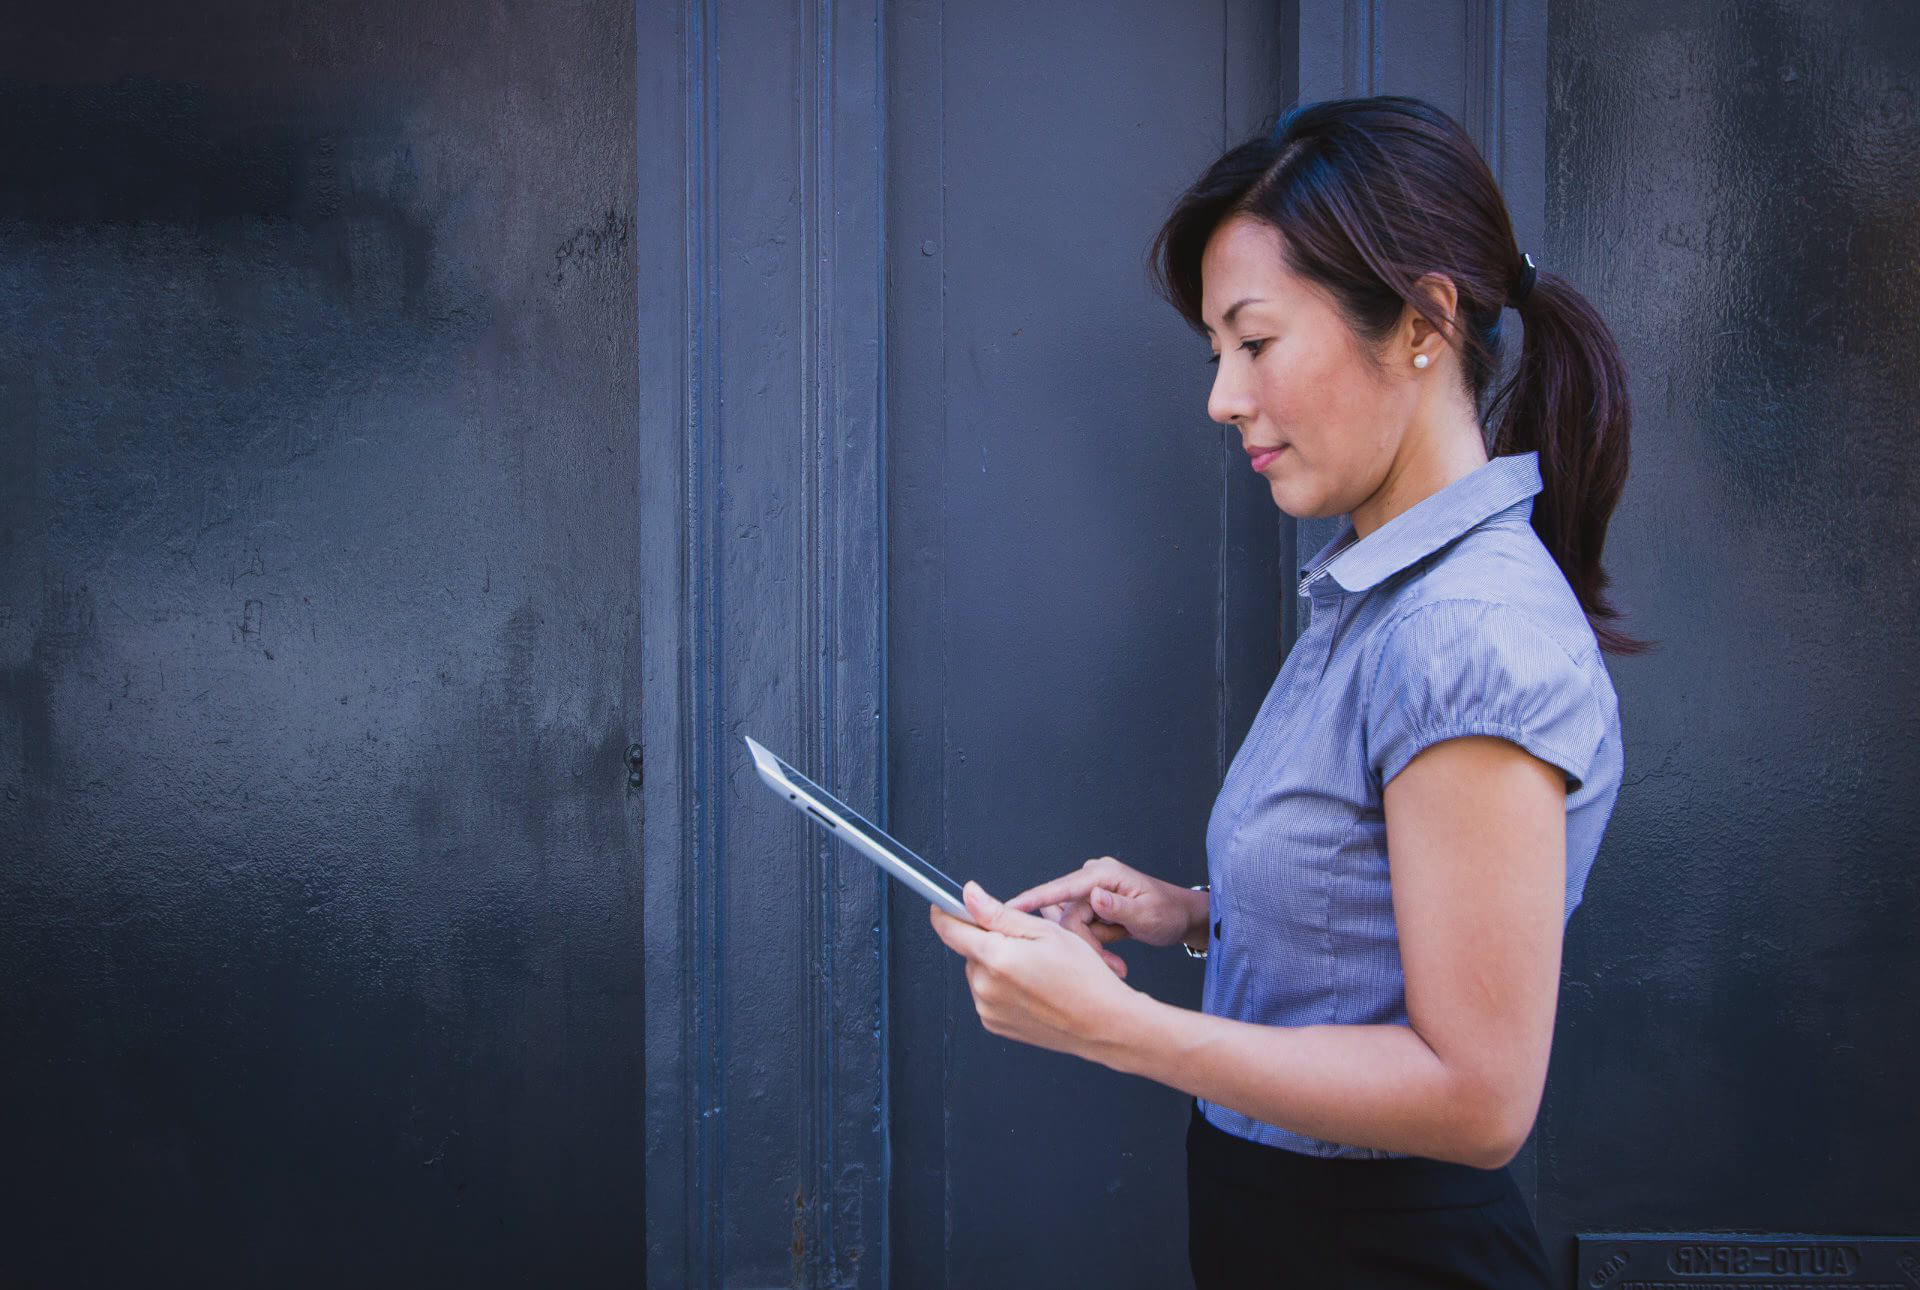 Woman in Blue Blouse Holding Tablet with Distressed Dark Wall in Background